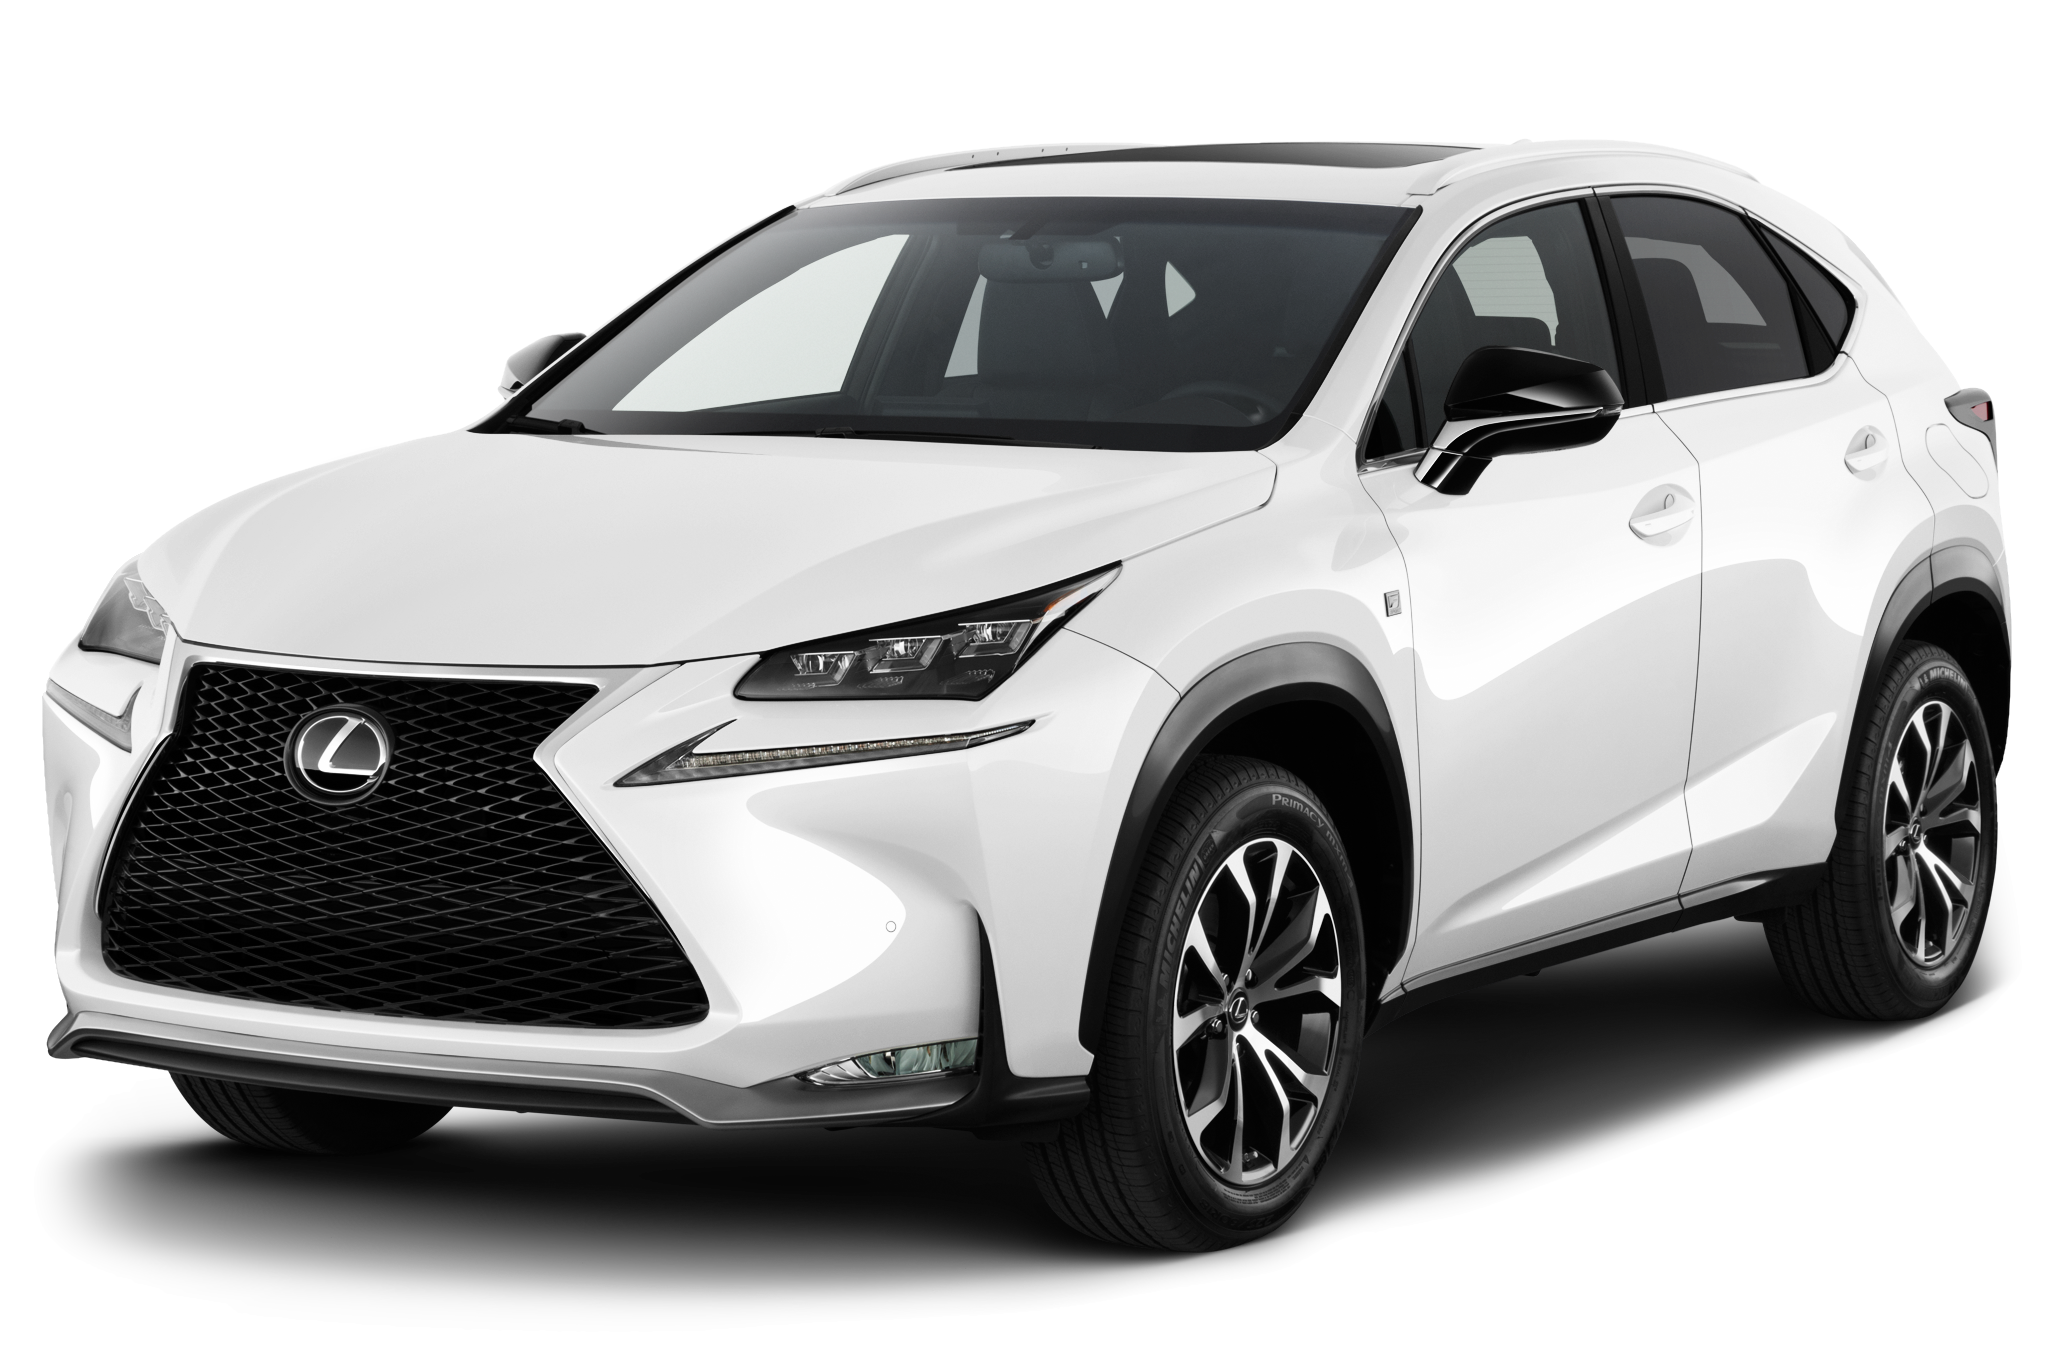 2015 lexus nx300h reviews and rating | motortrend